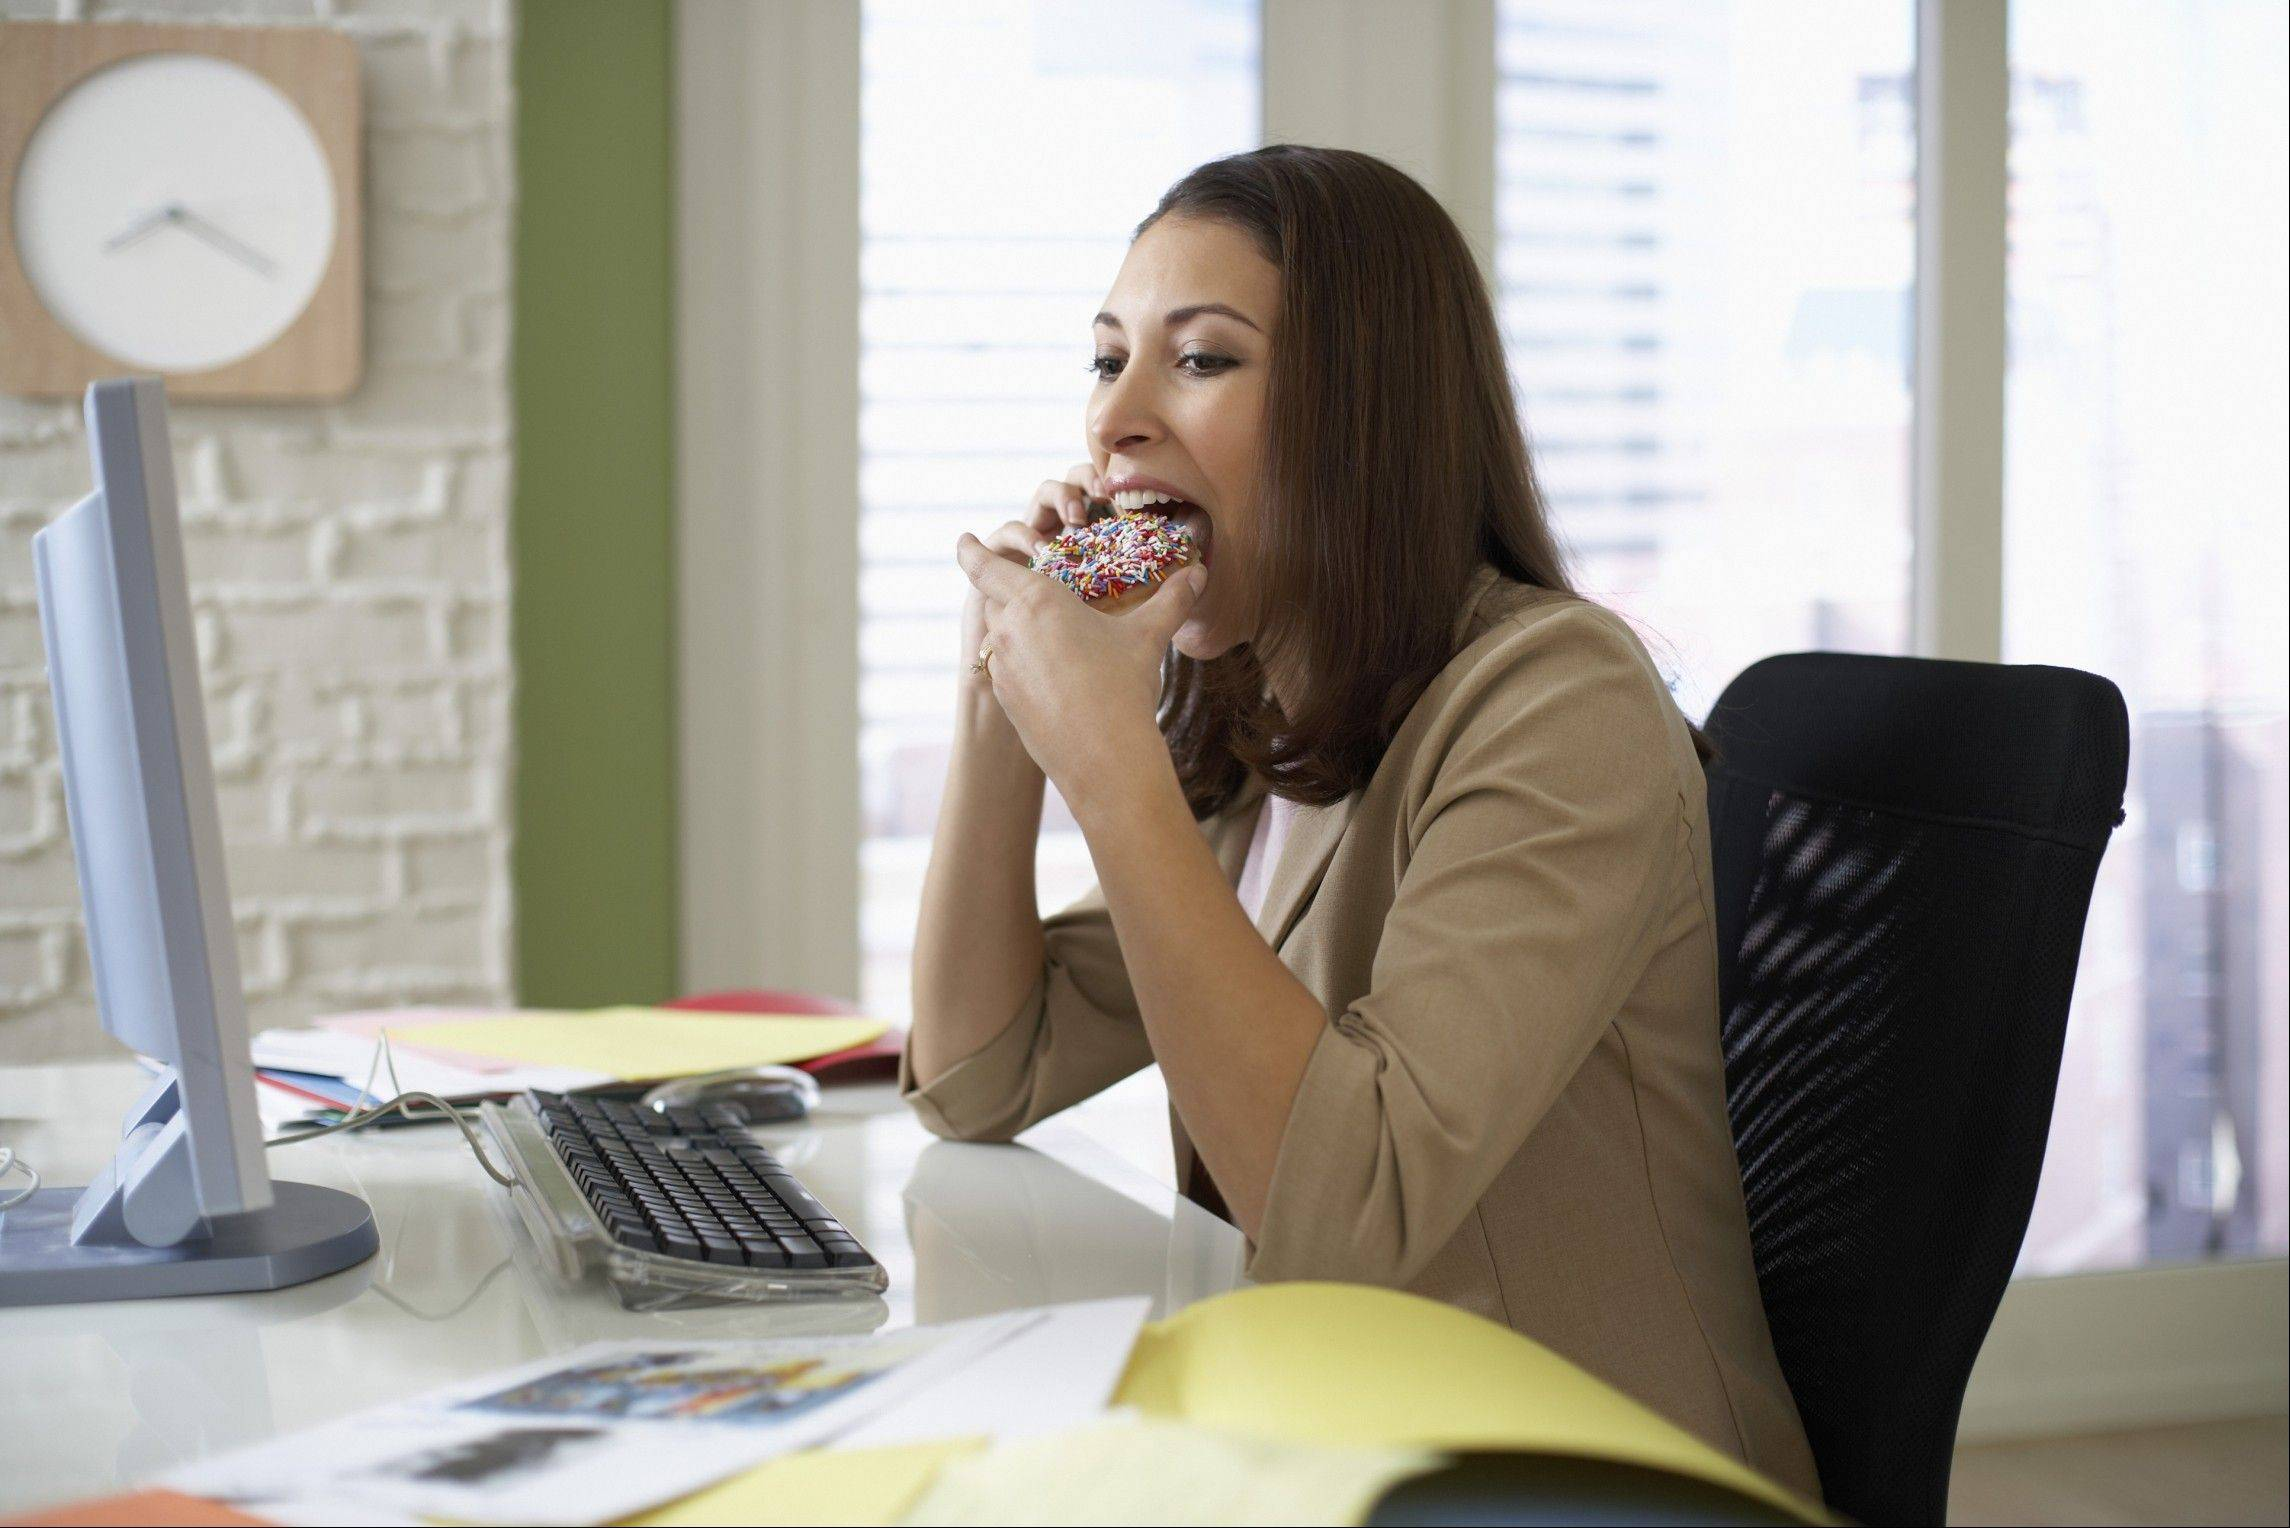 Eating junk food or unhealthy snacks at work can add to the waistline.